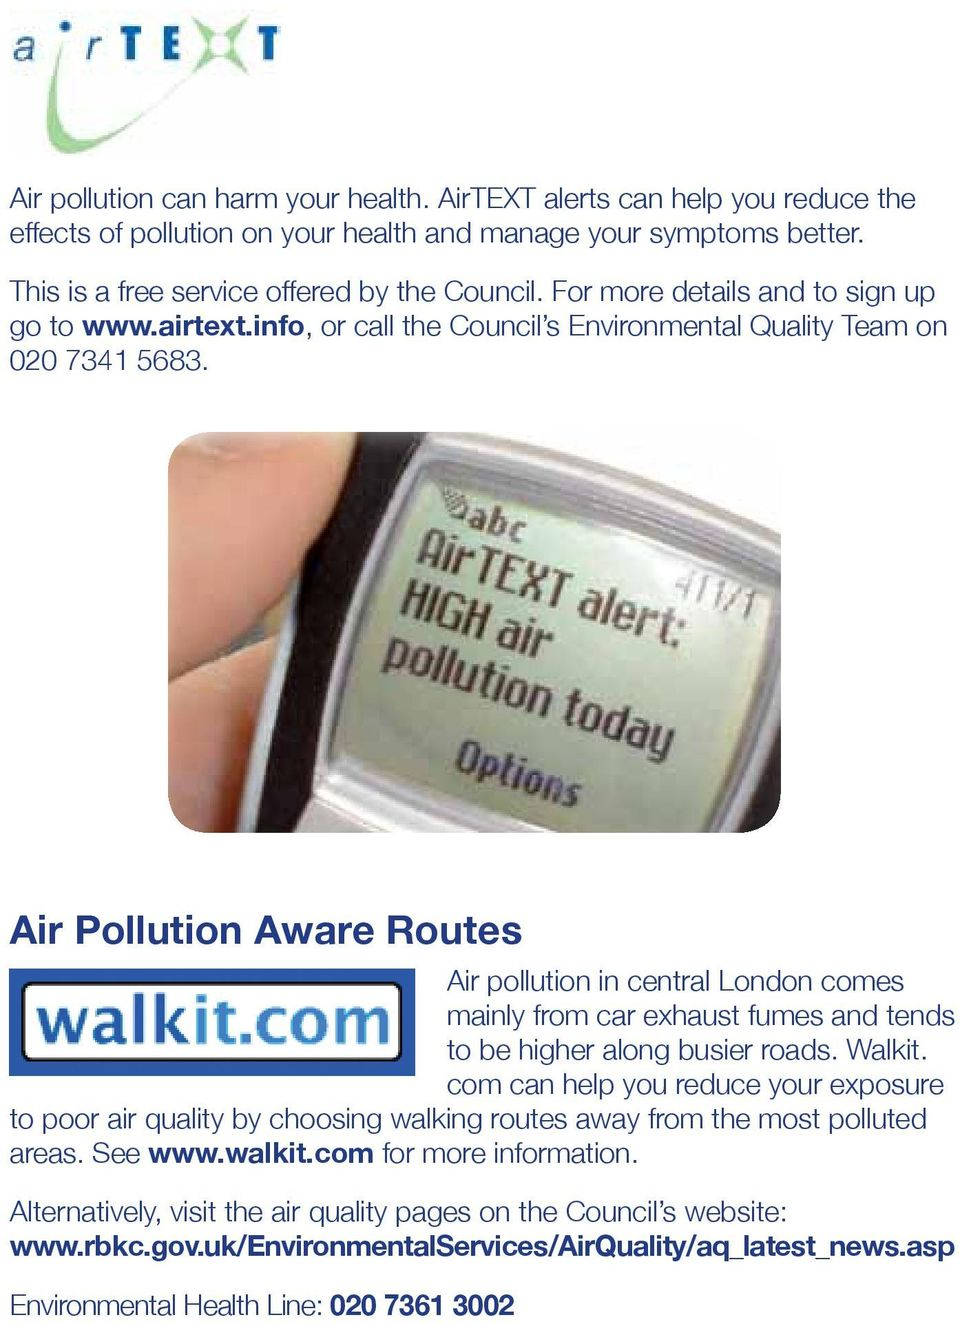 Air Pollution Aware Routes Air pollution in central London comes mainly from car exhaust fumes and tends to be higher along busier roads. Walkit.